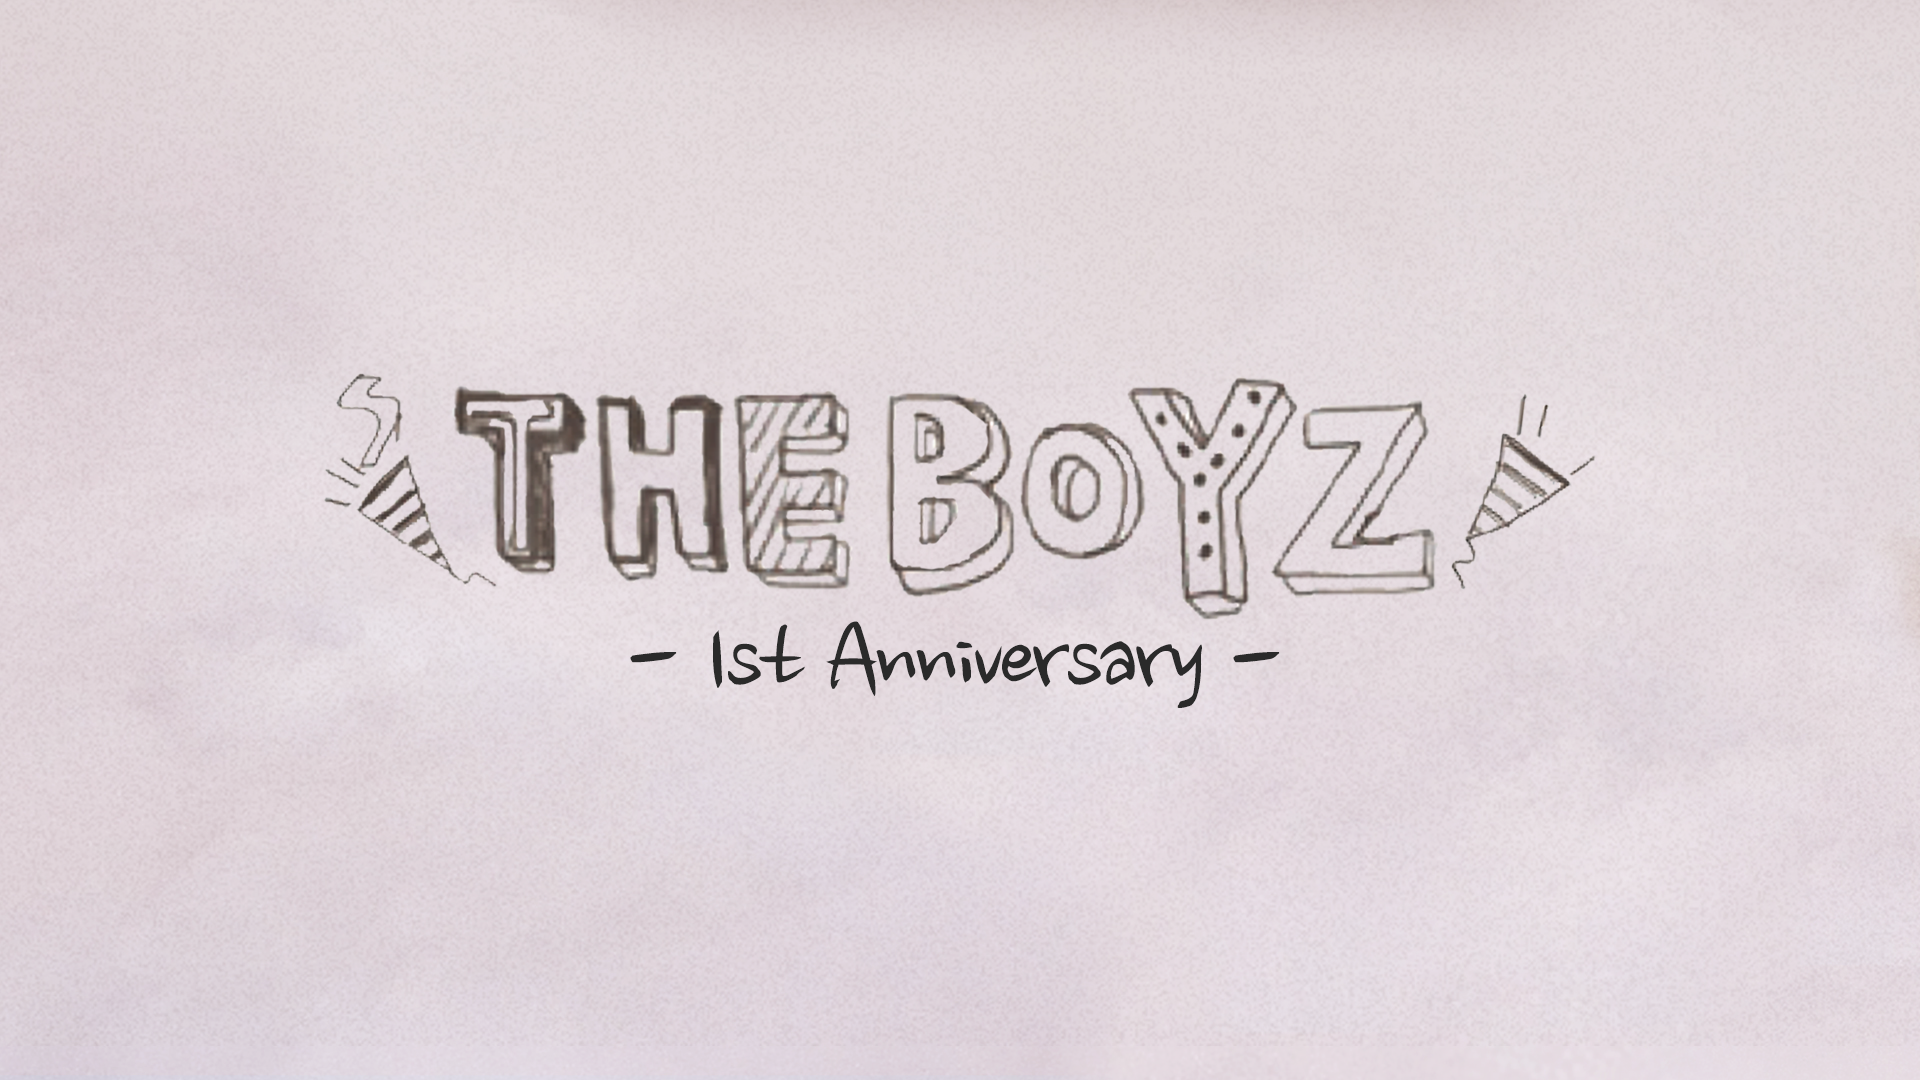 THE BOYZ 1st Anniversary Message